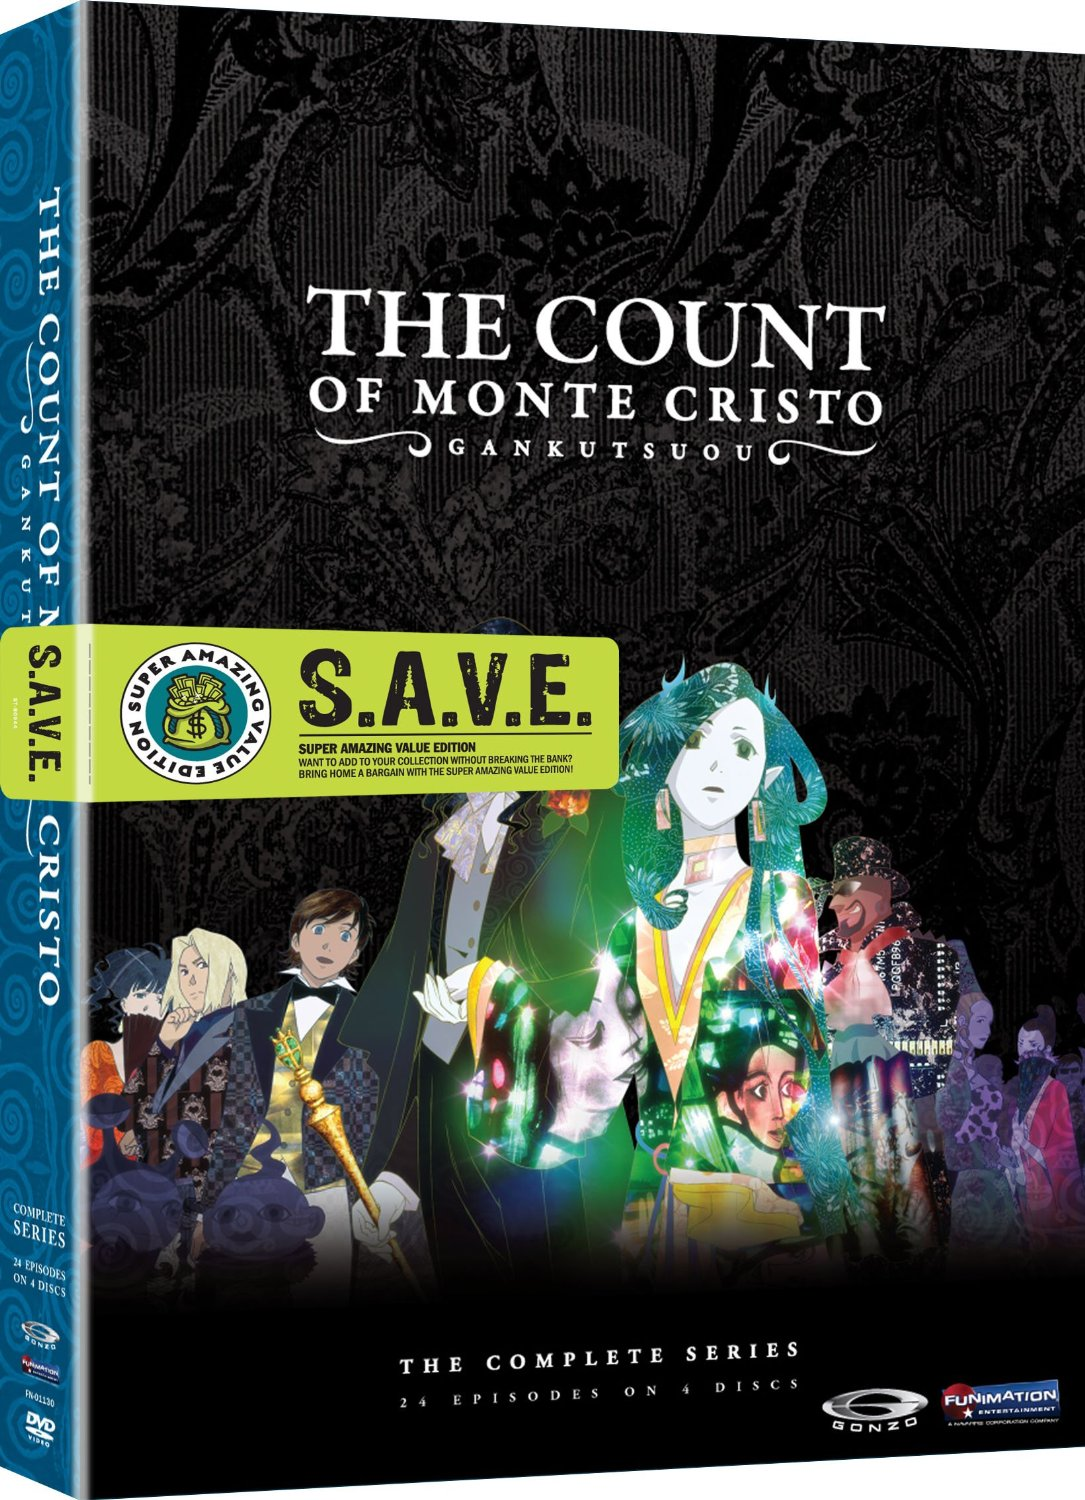 taliesin meets the vampires the count of monte cristo gankutsuou the count of monte cristo gankutsuou review